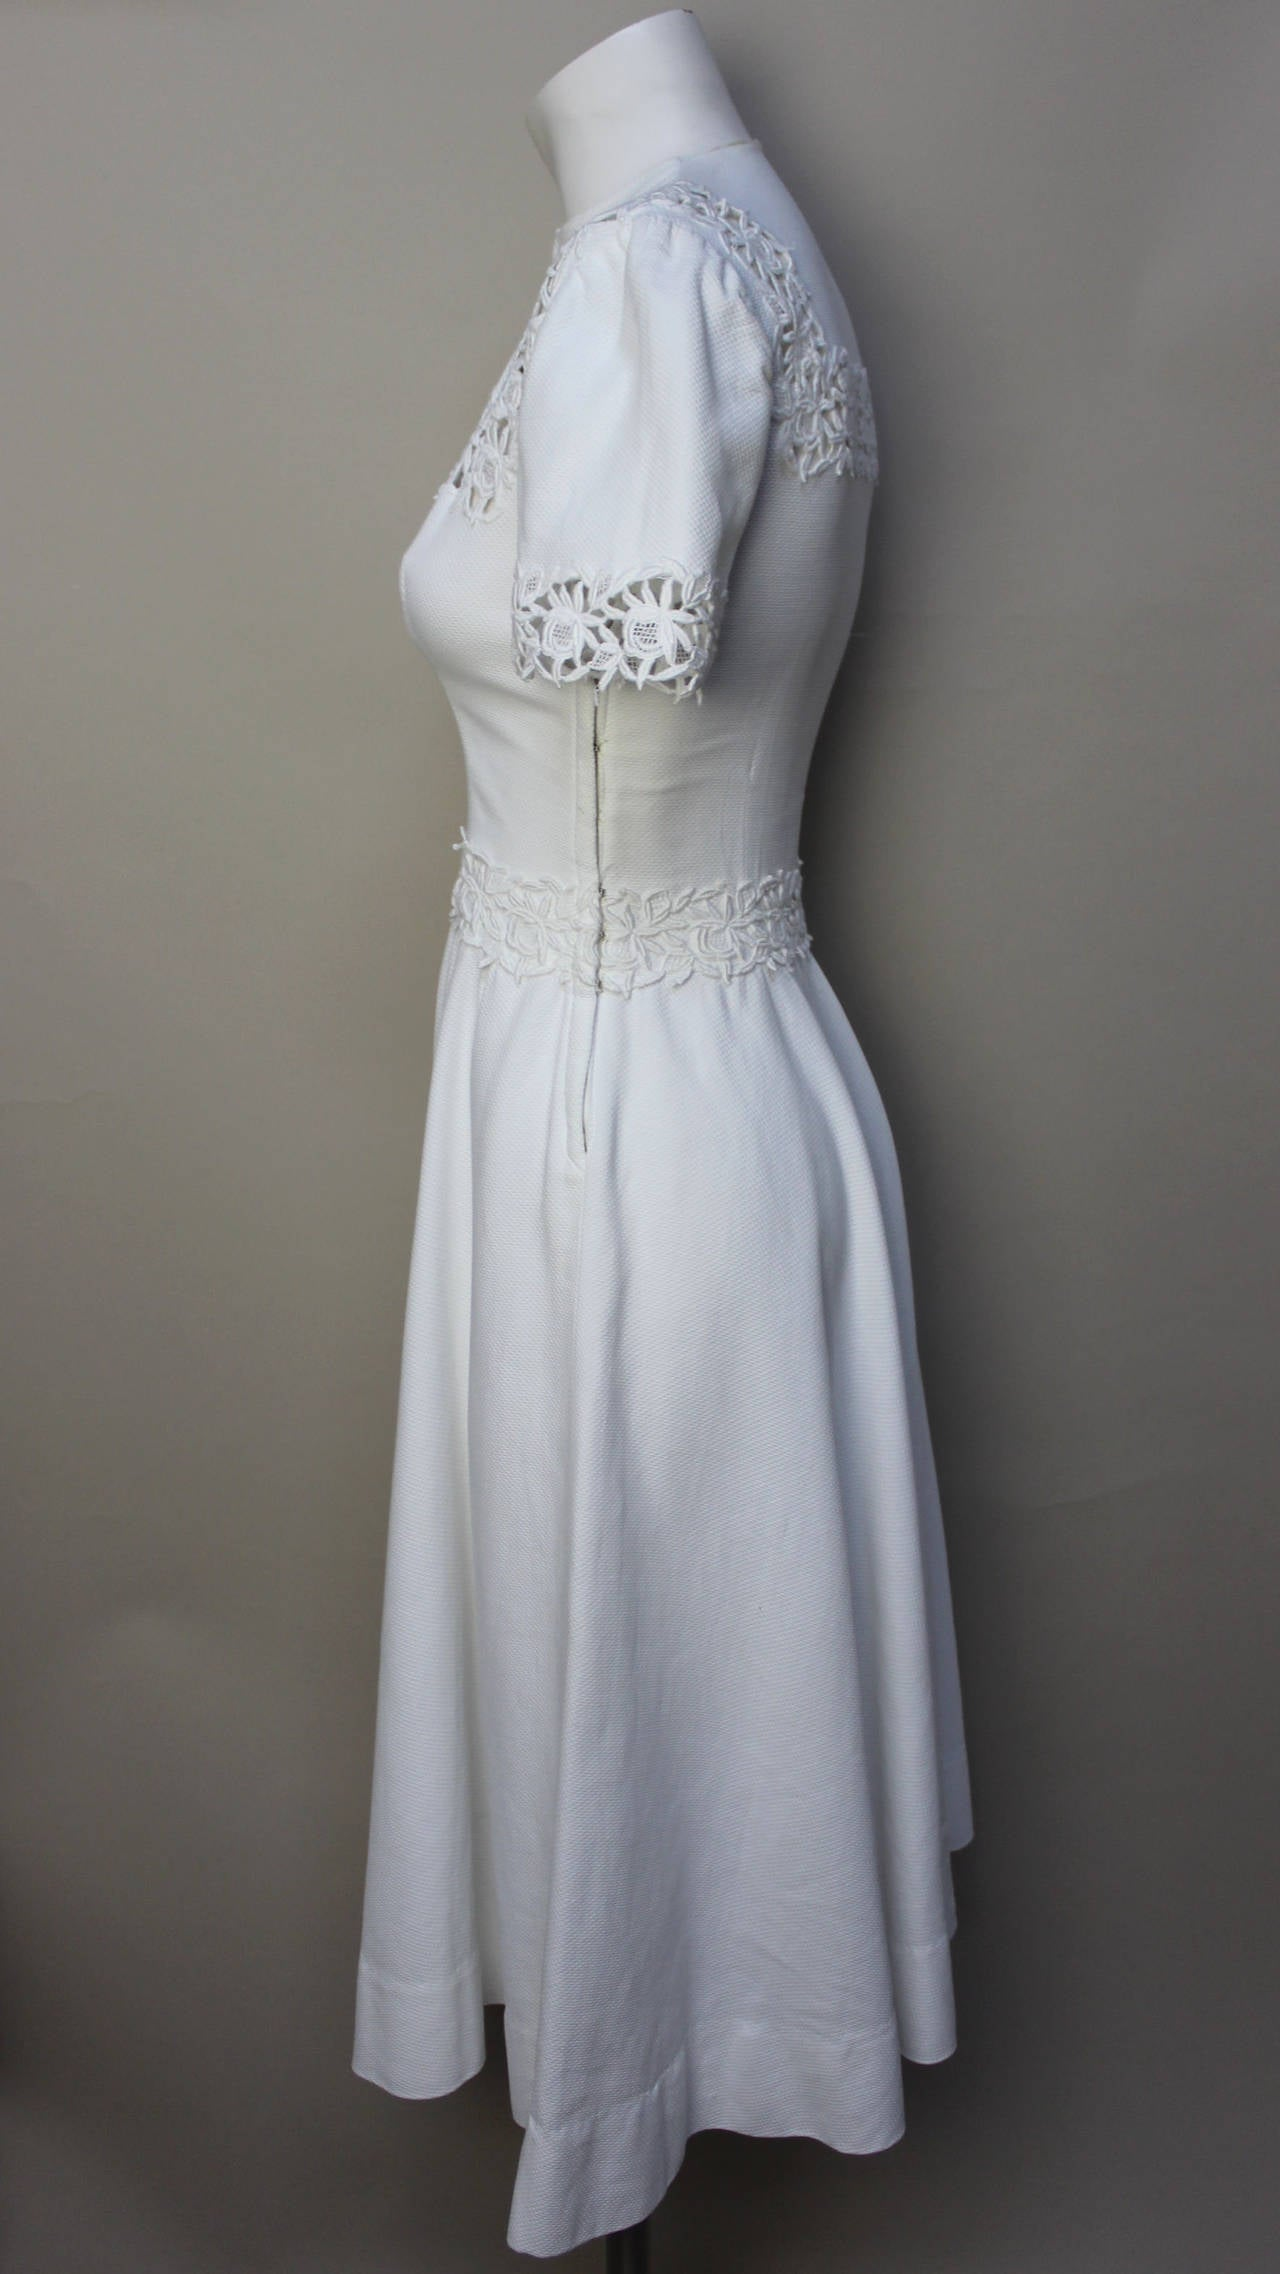 Gray 1940s/1950s Lawn Party White Pique Dress For Sale